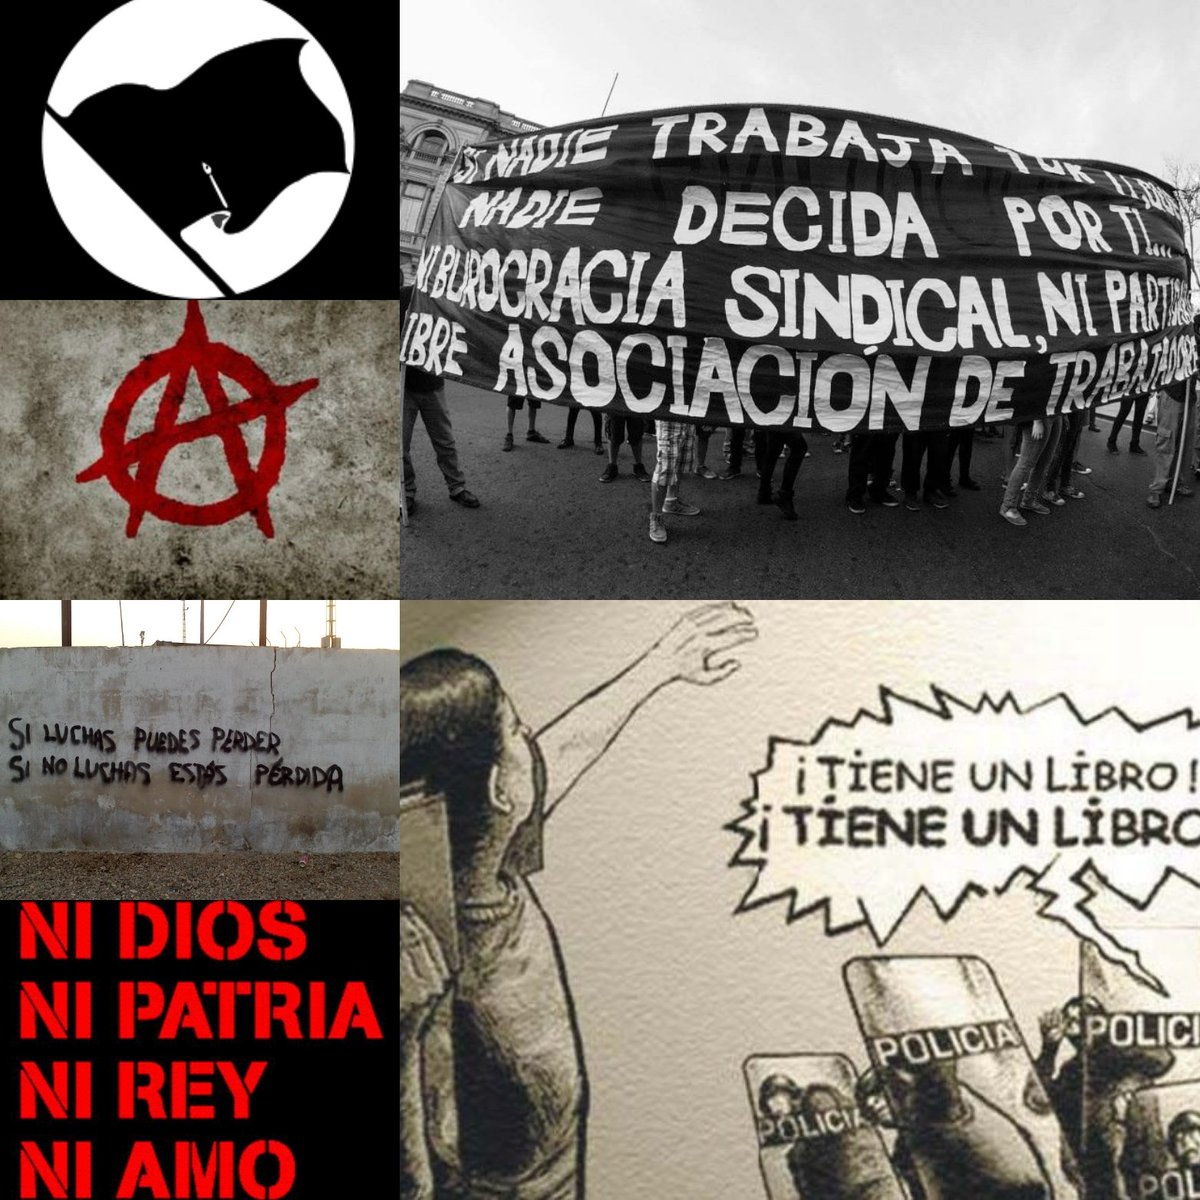 Remember Libro 𝚁𝚎𝚖𝚎𝚖𝚋𝚎𝚛 𝚛𝚎𝚖𝚎𝚖𝚋𝚎𝚛 5thofnovember Anarchism